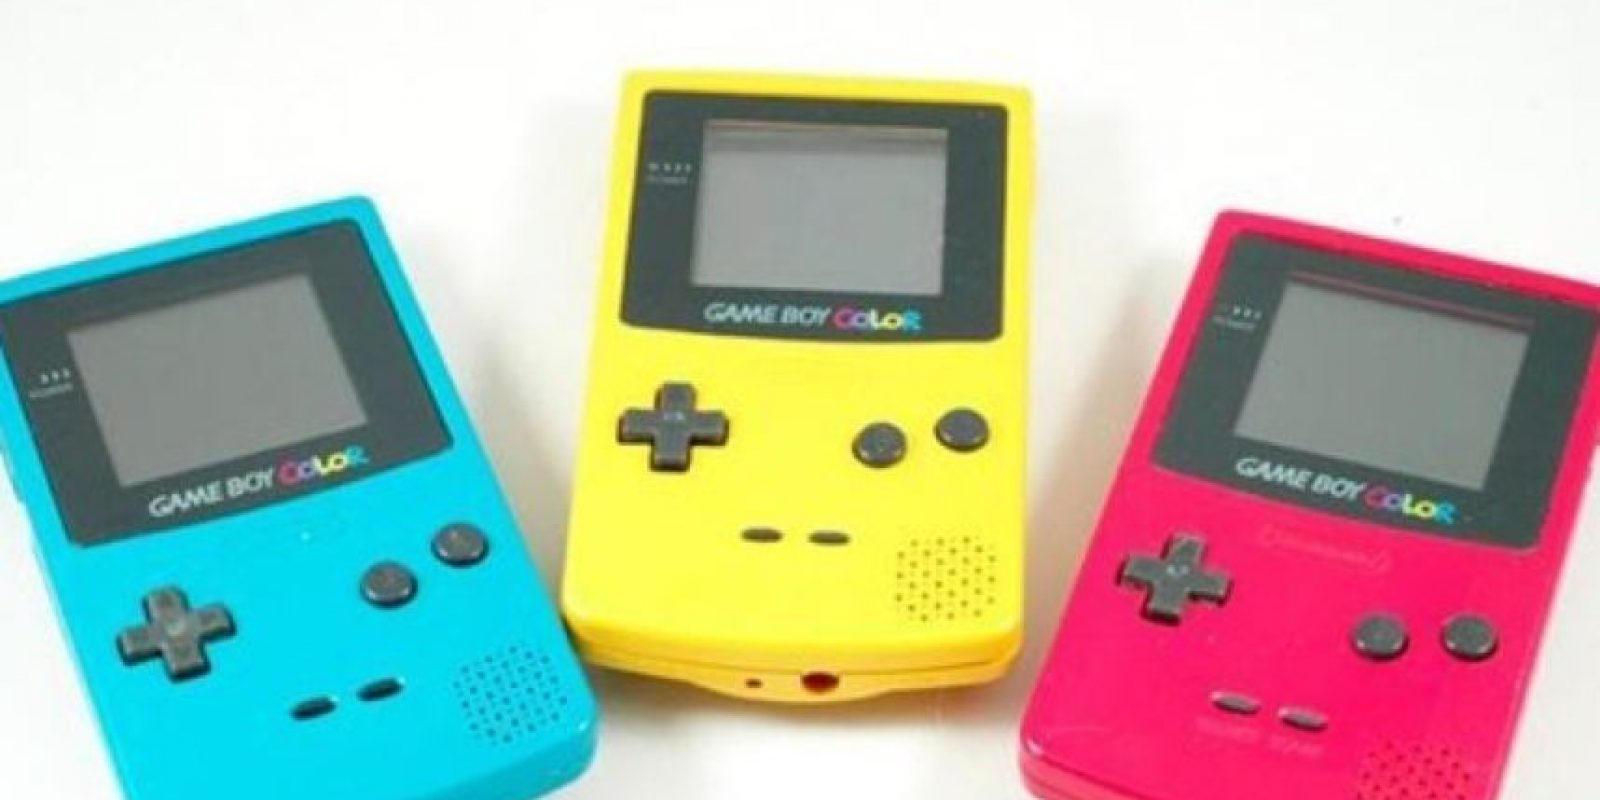 El Game Boy Foto: Reddit